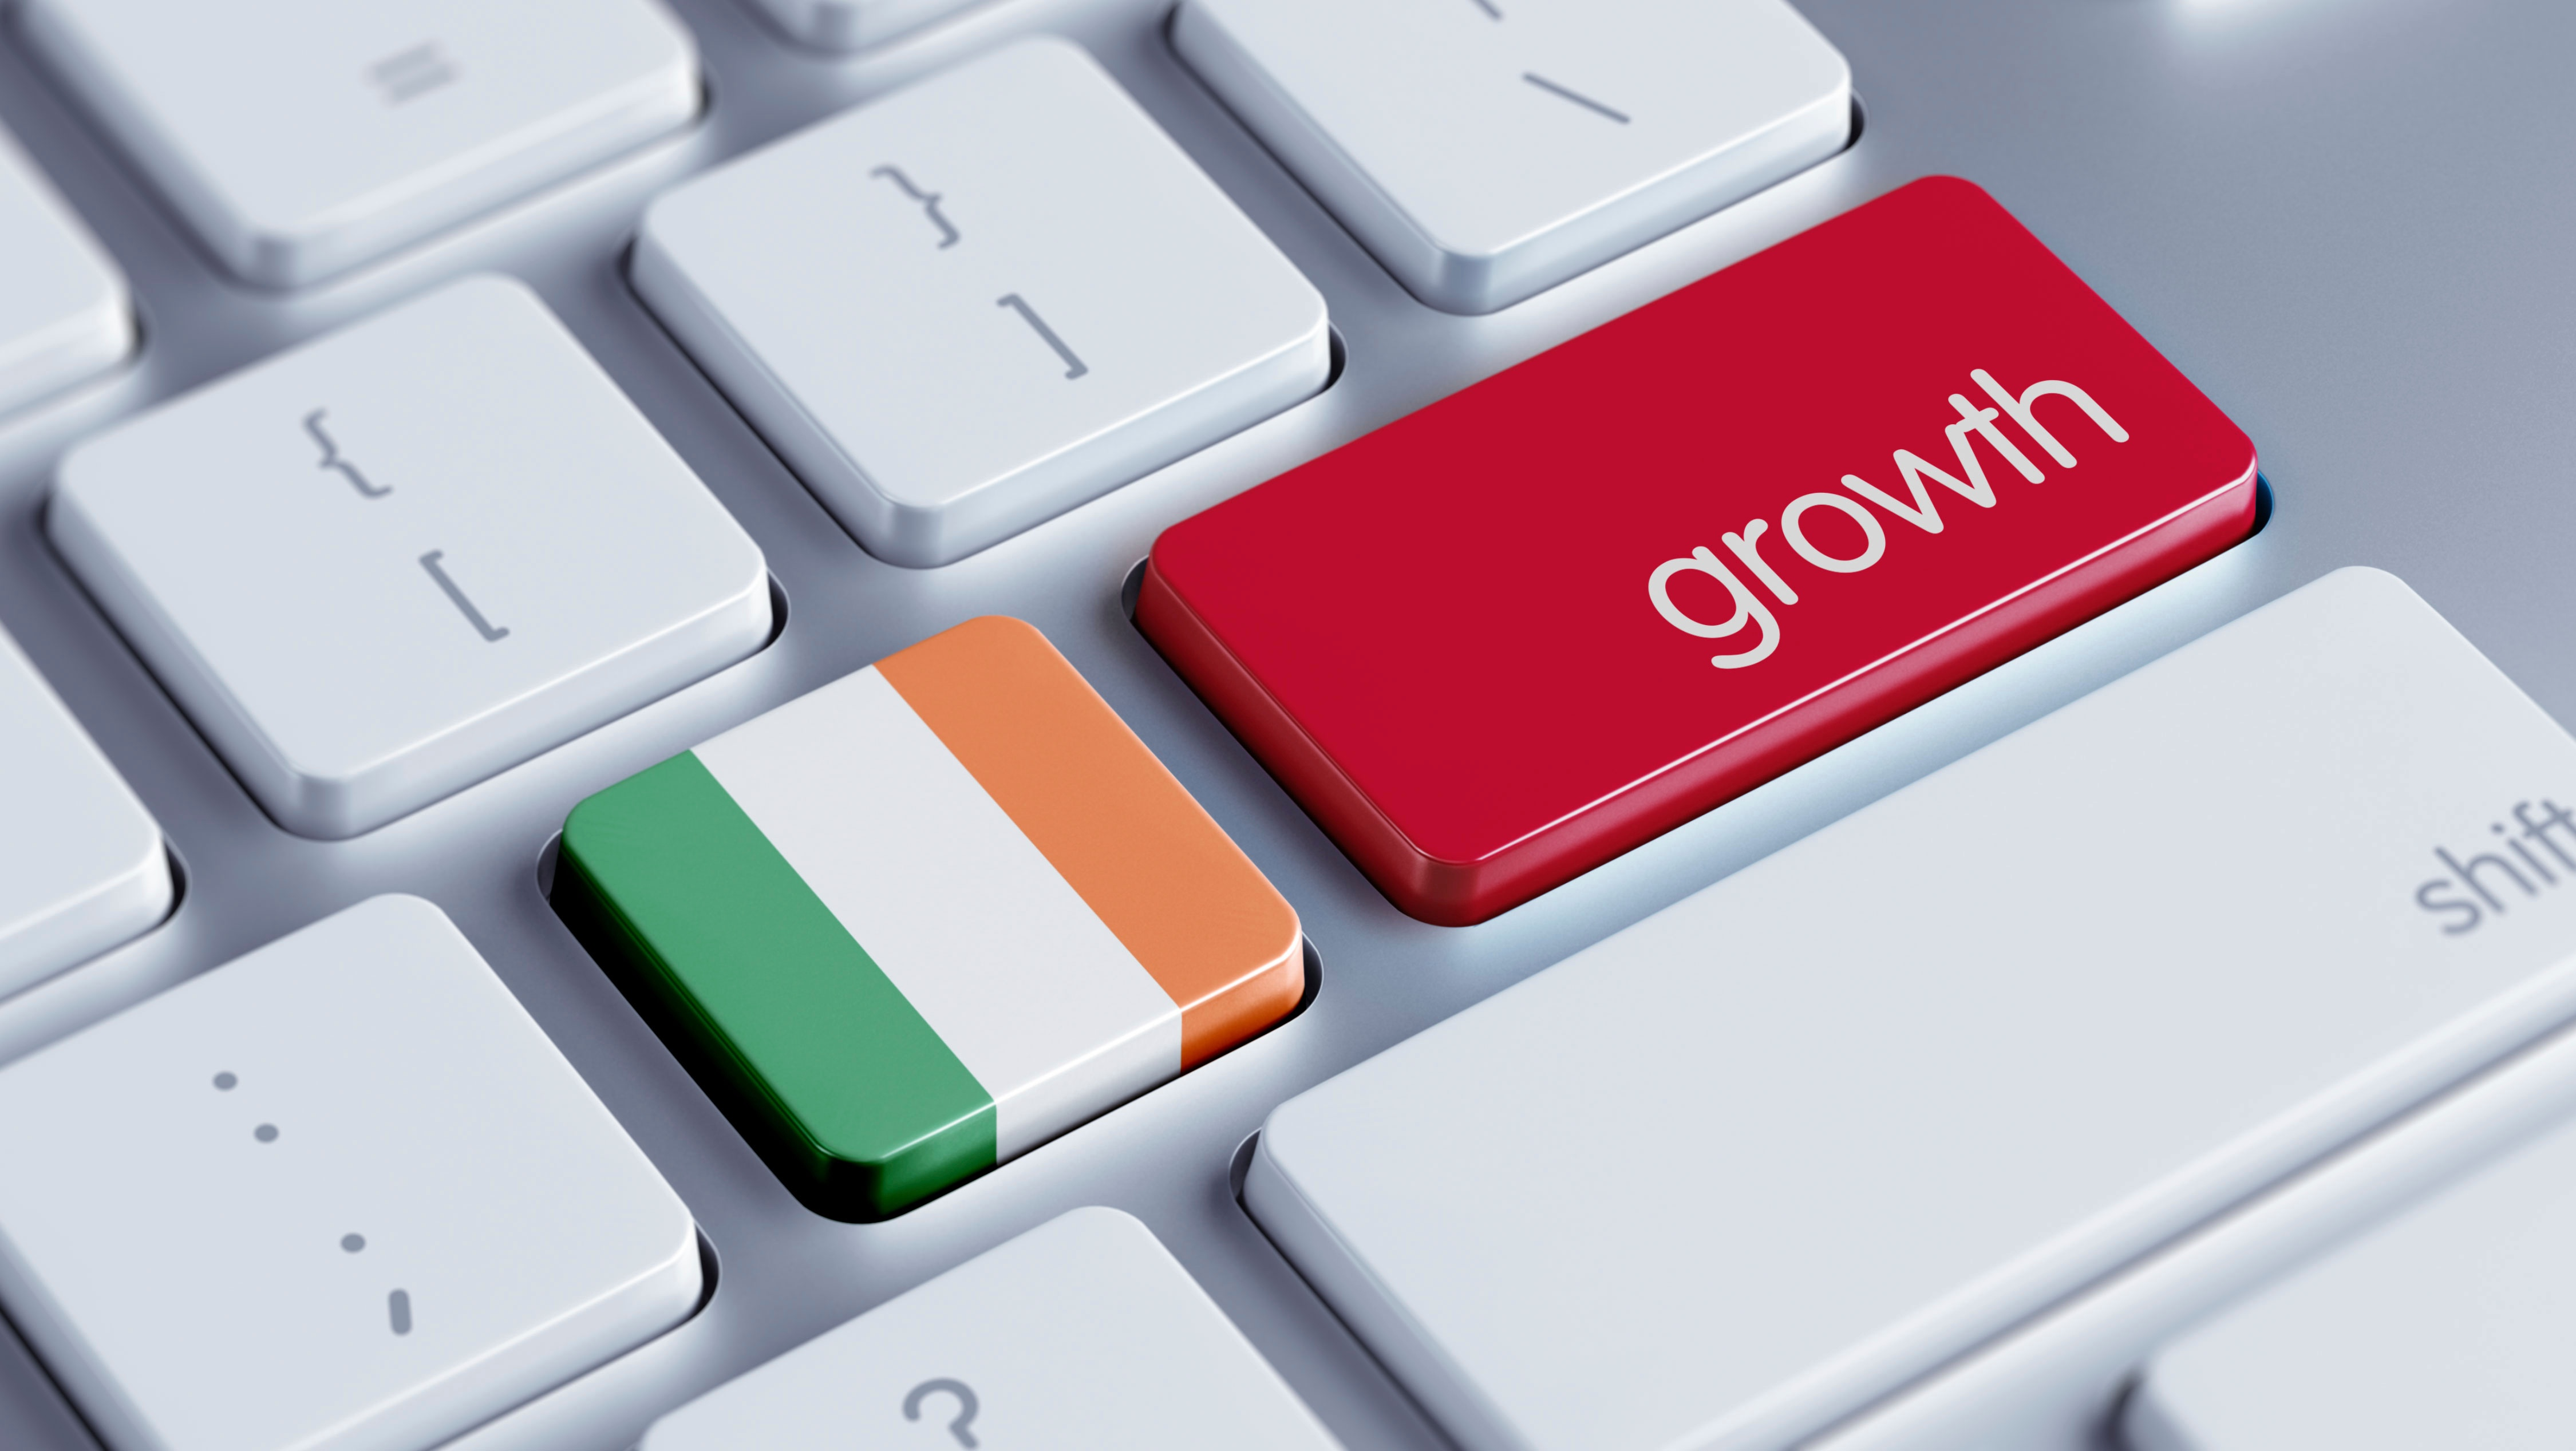 choose-irelands-for-business-a-hotspot-for-foreign-direct-investment.jpg